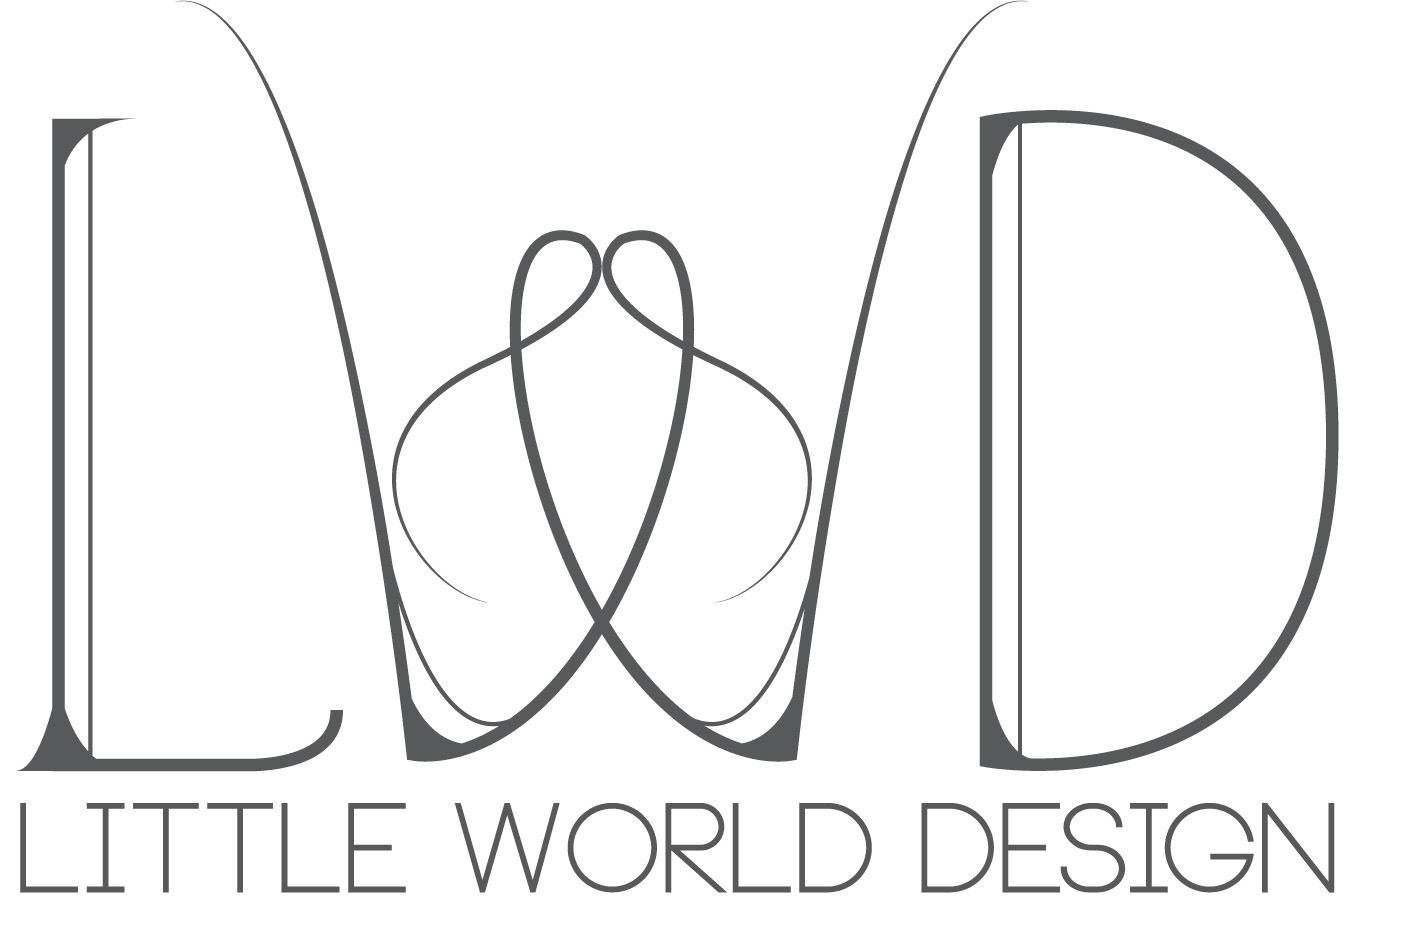 Little World Design